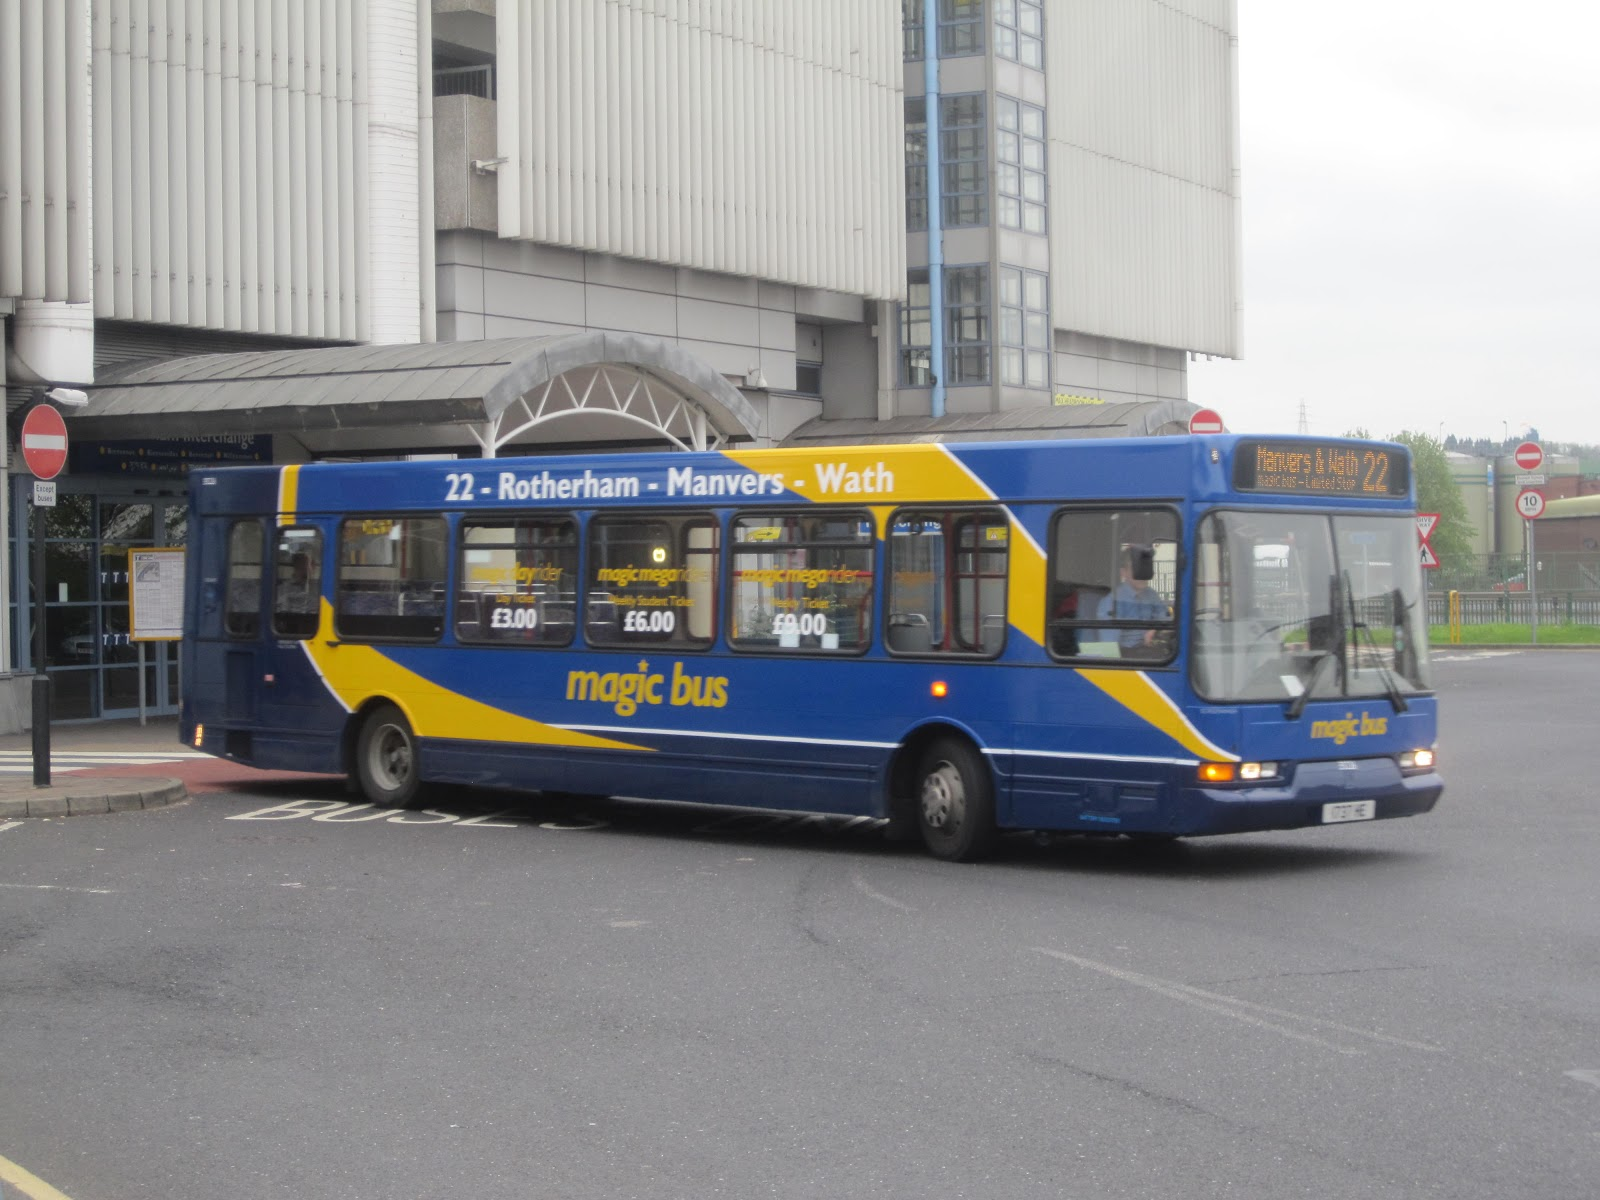 On Monday  Stagecoach Yorkshires Rotherham Rawmarsh Depot Launched Its Magic Bus Operation In Comperition With First South Yorkshire On Route 22